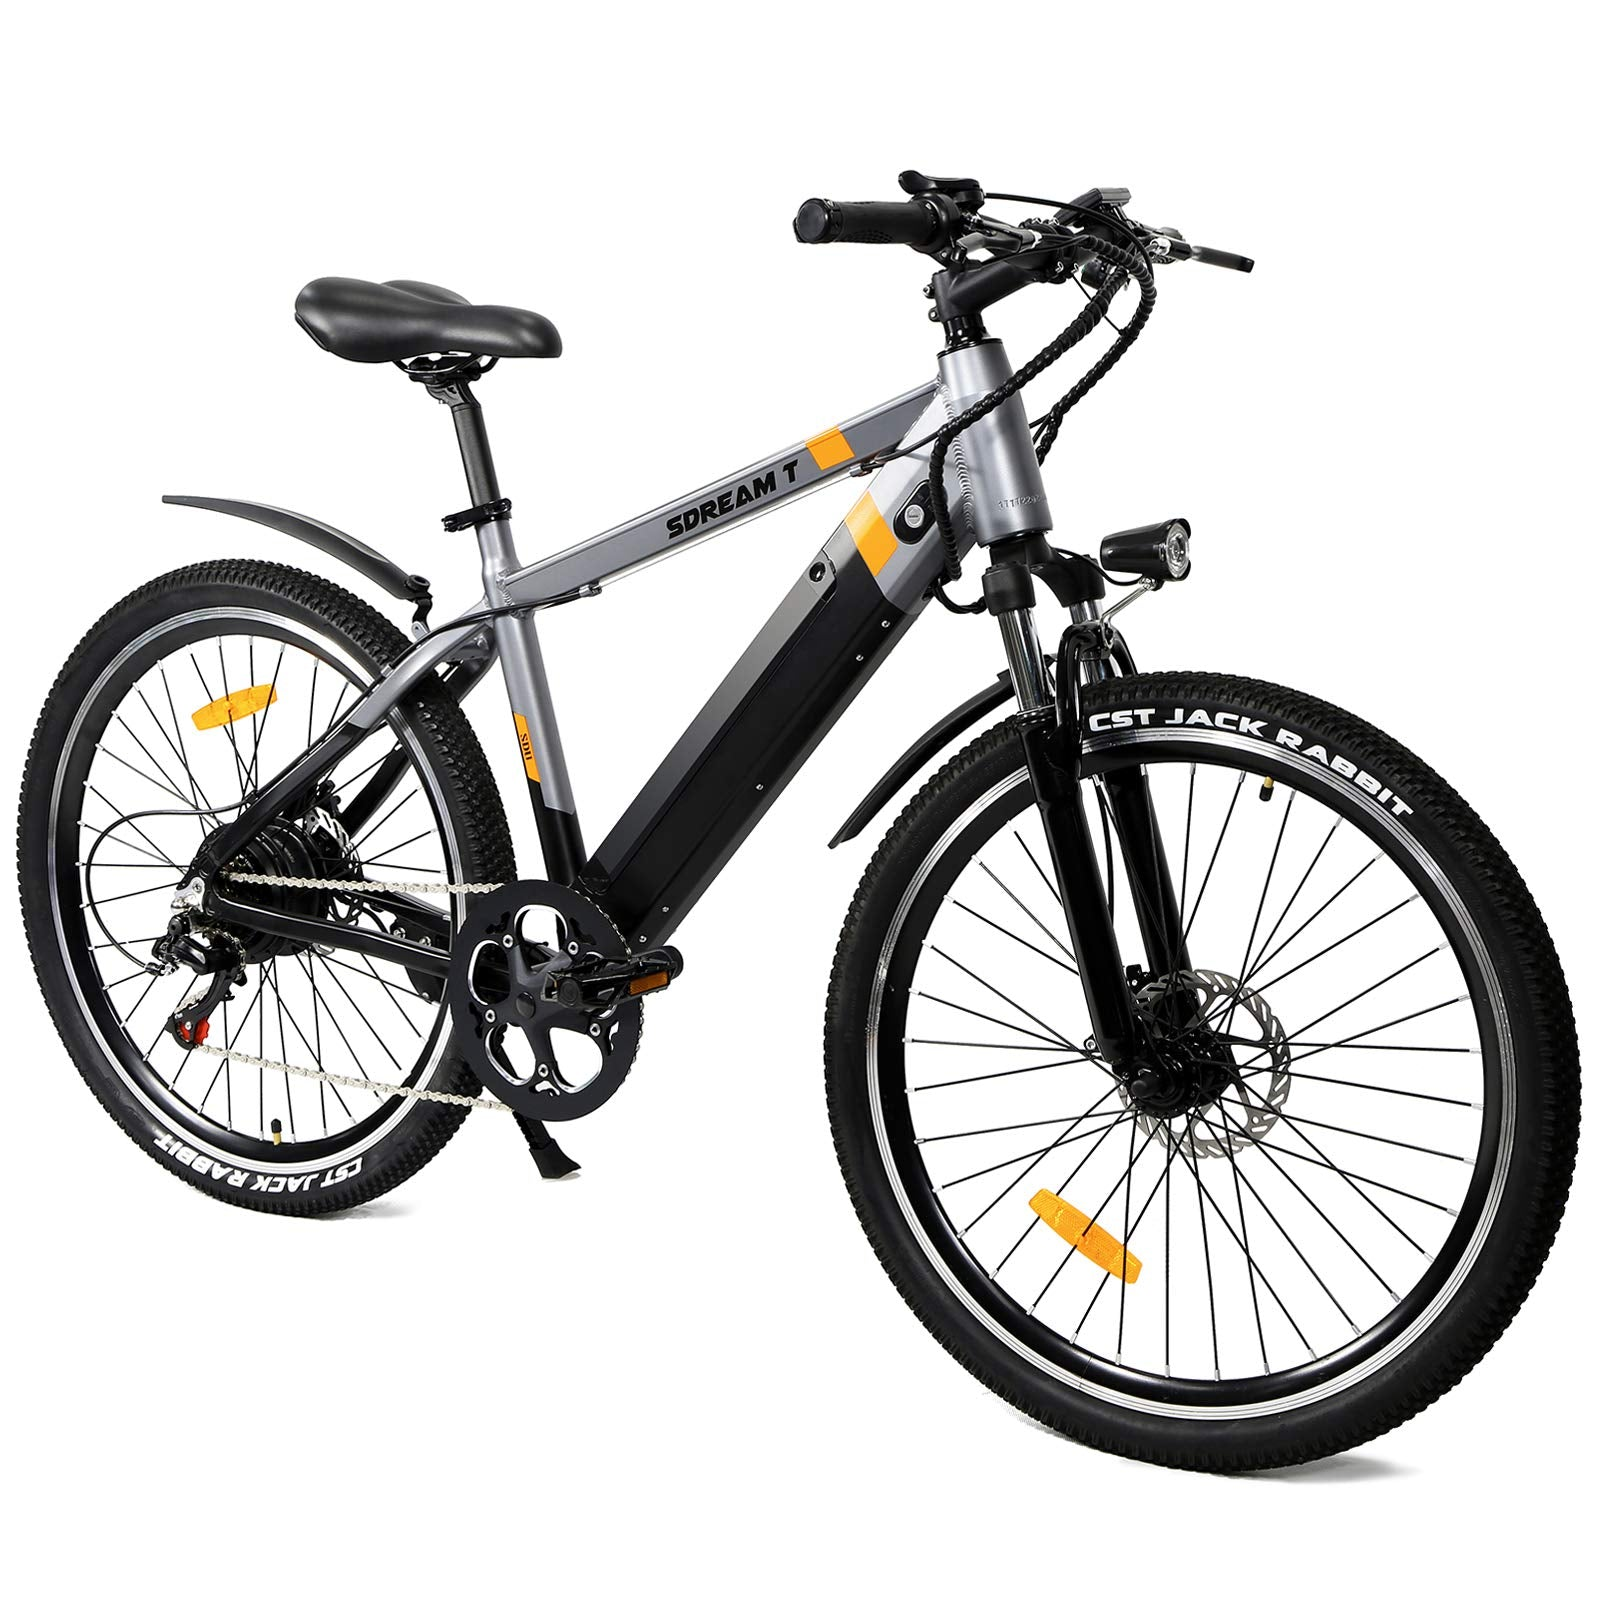 SDU 350W Mountain Electric Bike SDREAM T350, Hidden Design 48V/10.4Ah Removable Battery, 26″ Gray Ebike for Adults, Max 20 MPH, Cruise Feature, Front Suspension Bicycle for Mountain Trail/Commuting